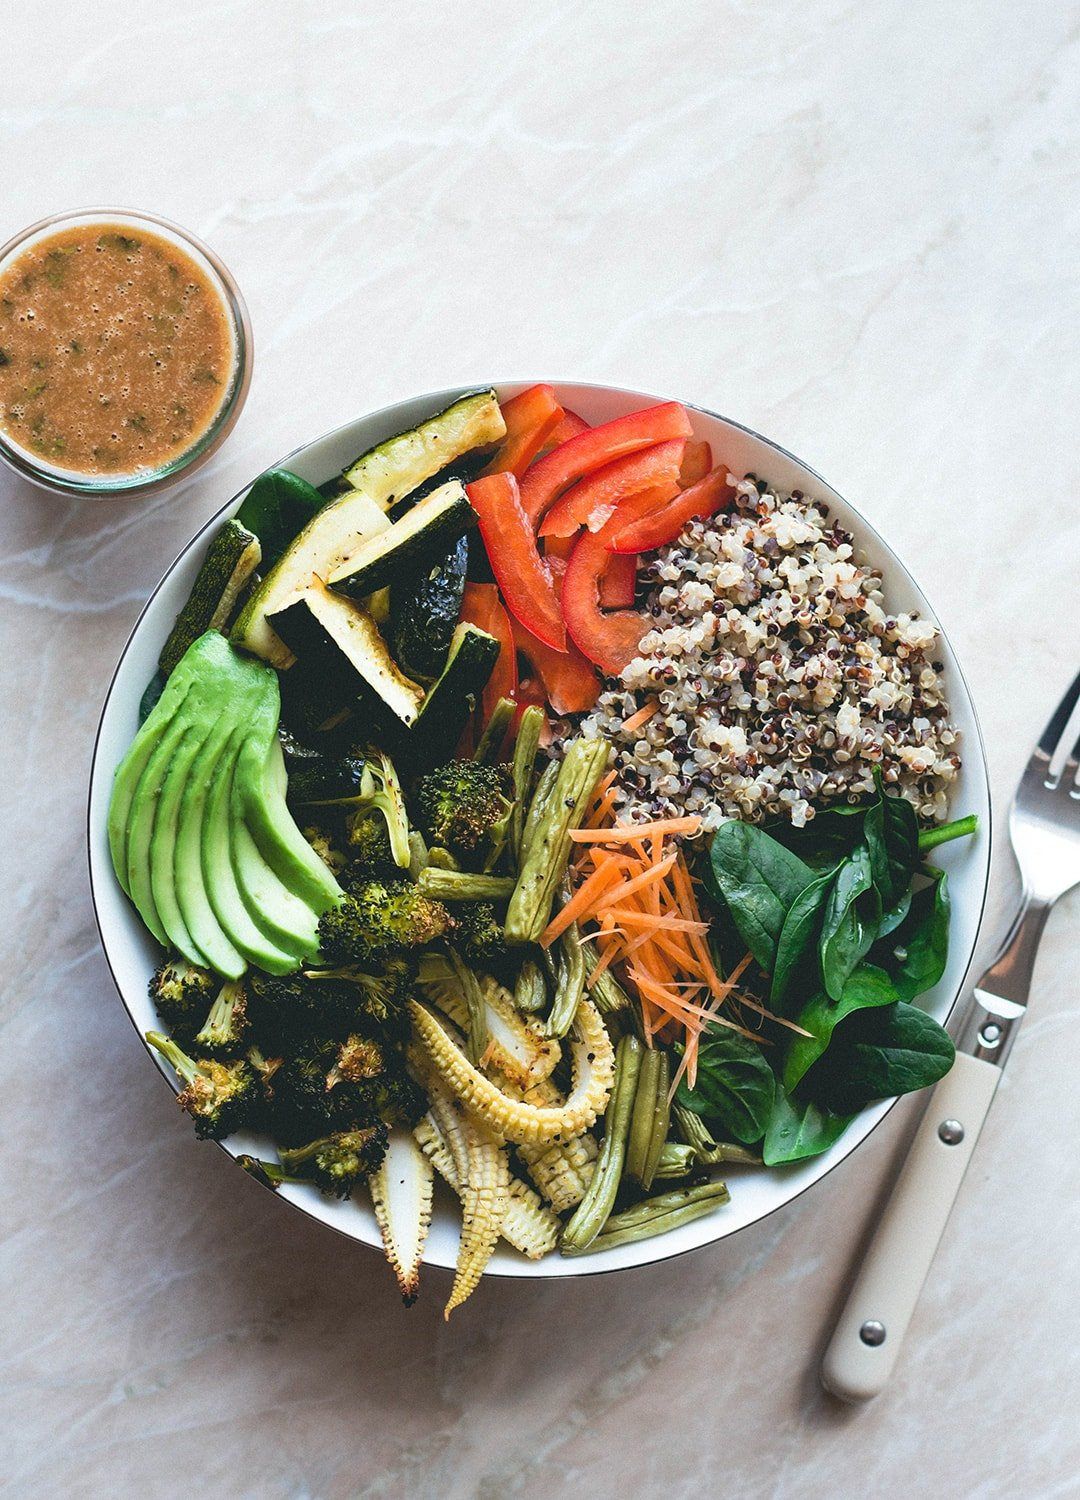 Thai Power Bowl with Wild Peanut Butter Dressing (vegan-gluten-free) - delicious salad bowl with colorful quinoa, roasted vegetables, spinach, avocado, carrots, bell peppers, and the most amazing dressing! | thehealthfulideas.com